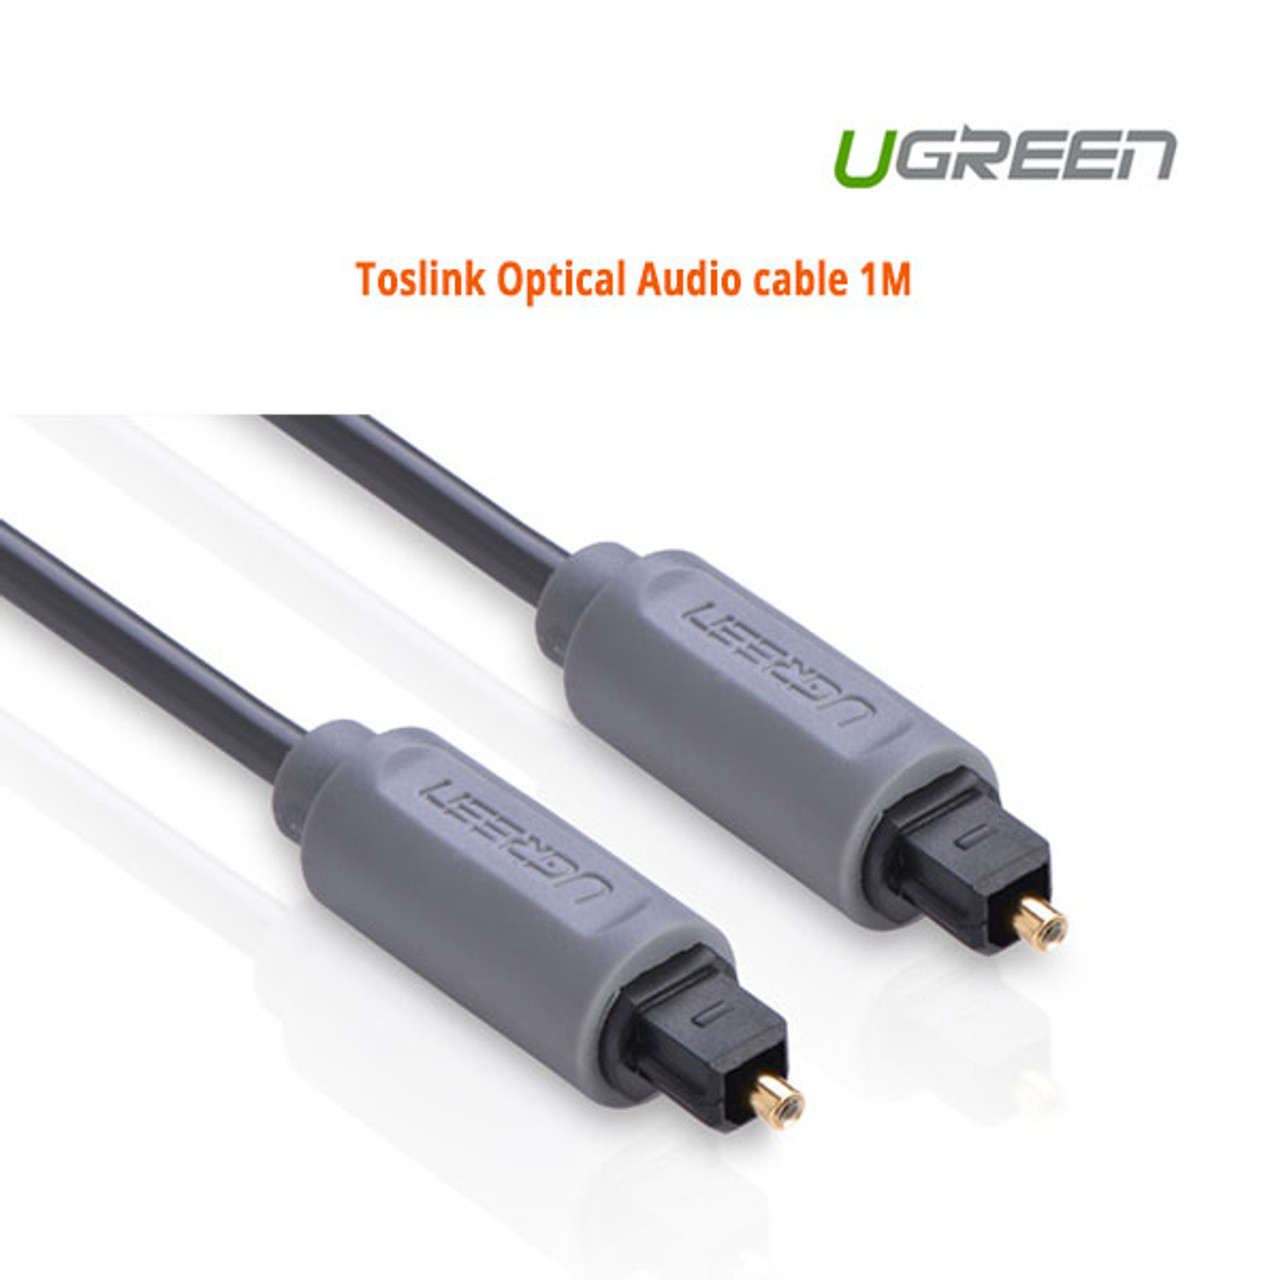 Product image for Toslink Optical Audio cable 1M 10768 | CX Computer Superstore